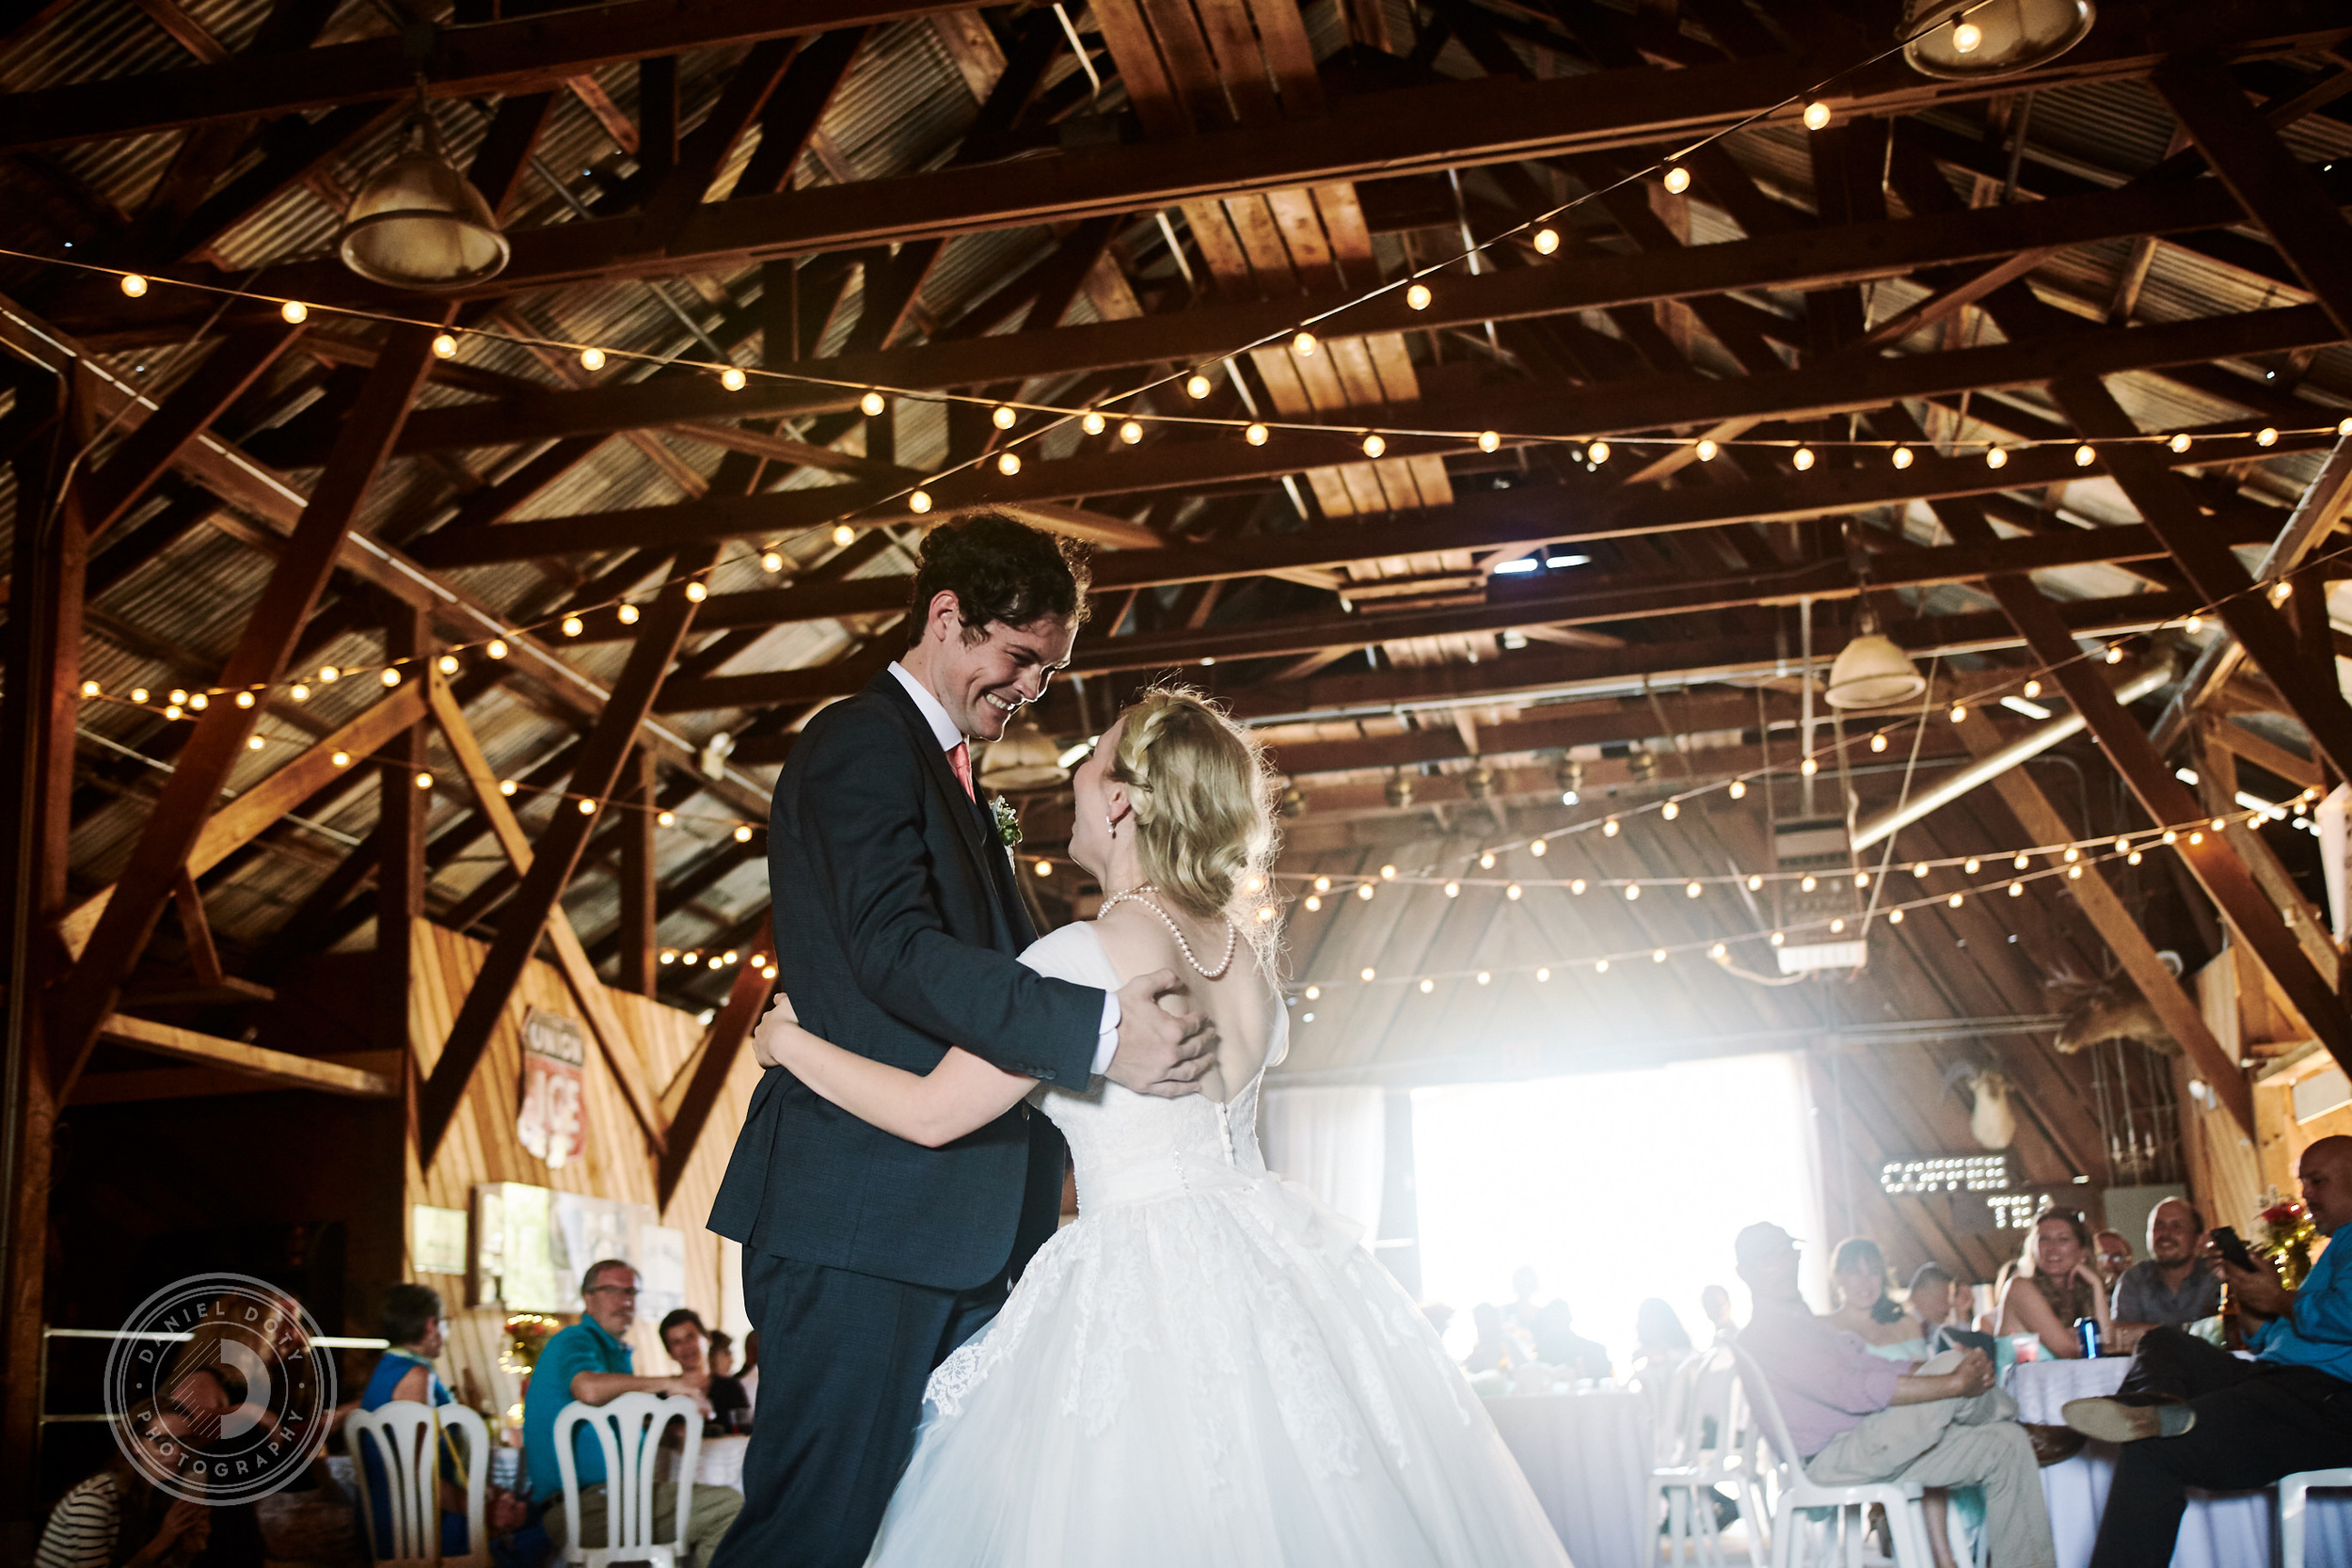 Daniel Doty Photography Erin Colin SoCal Wedding Photographer Strathearn 173.jpg